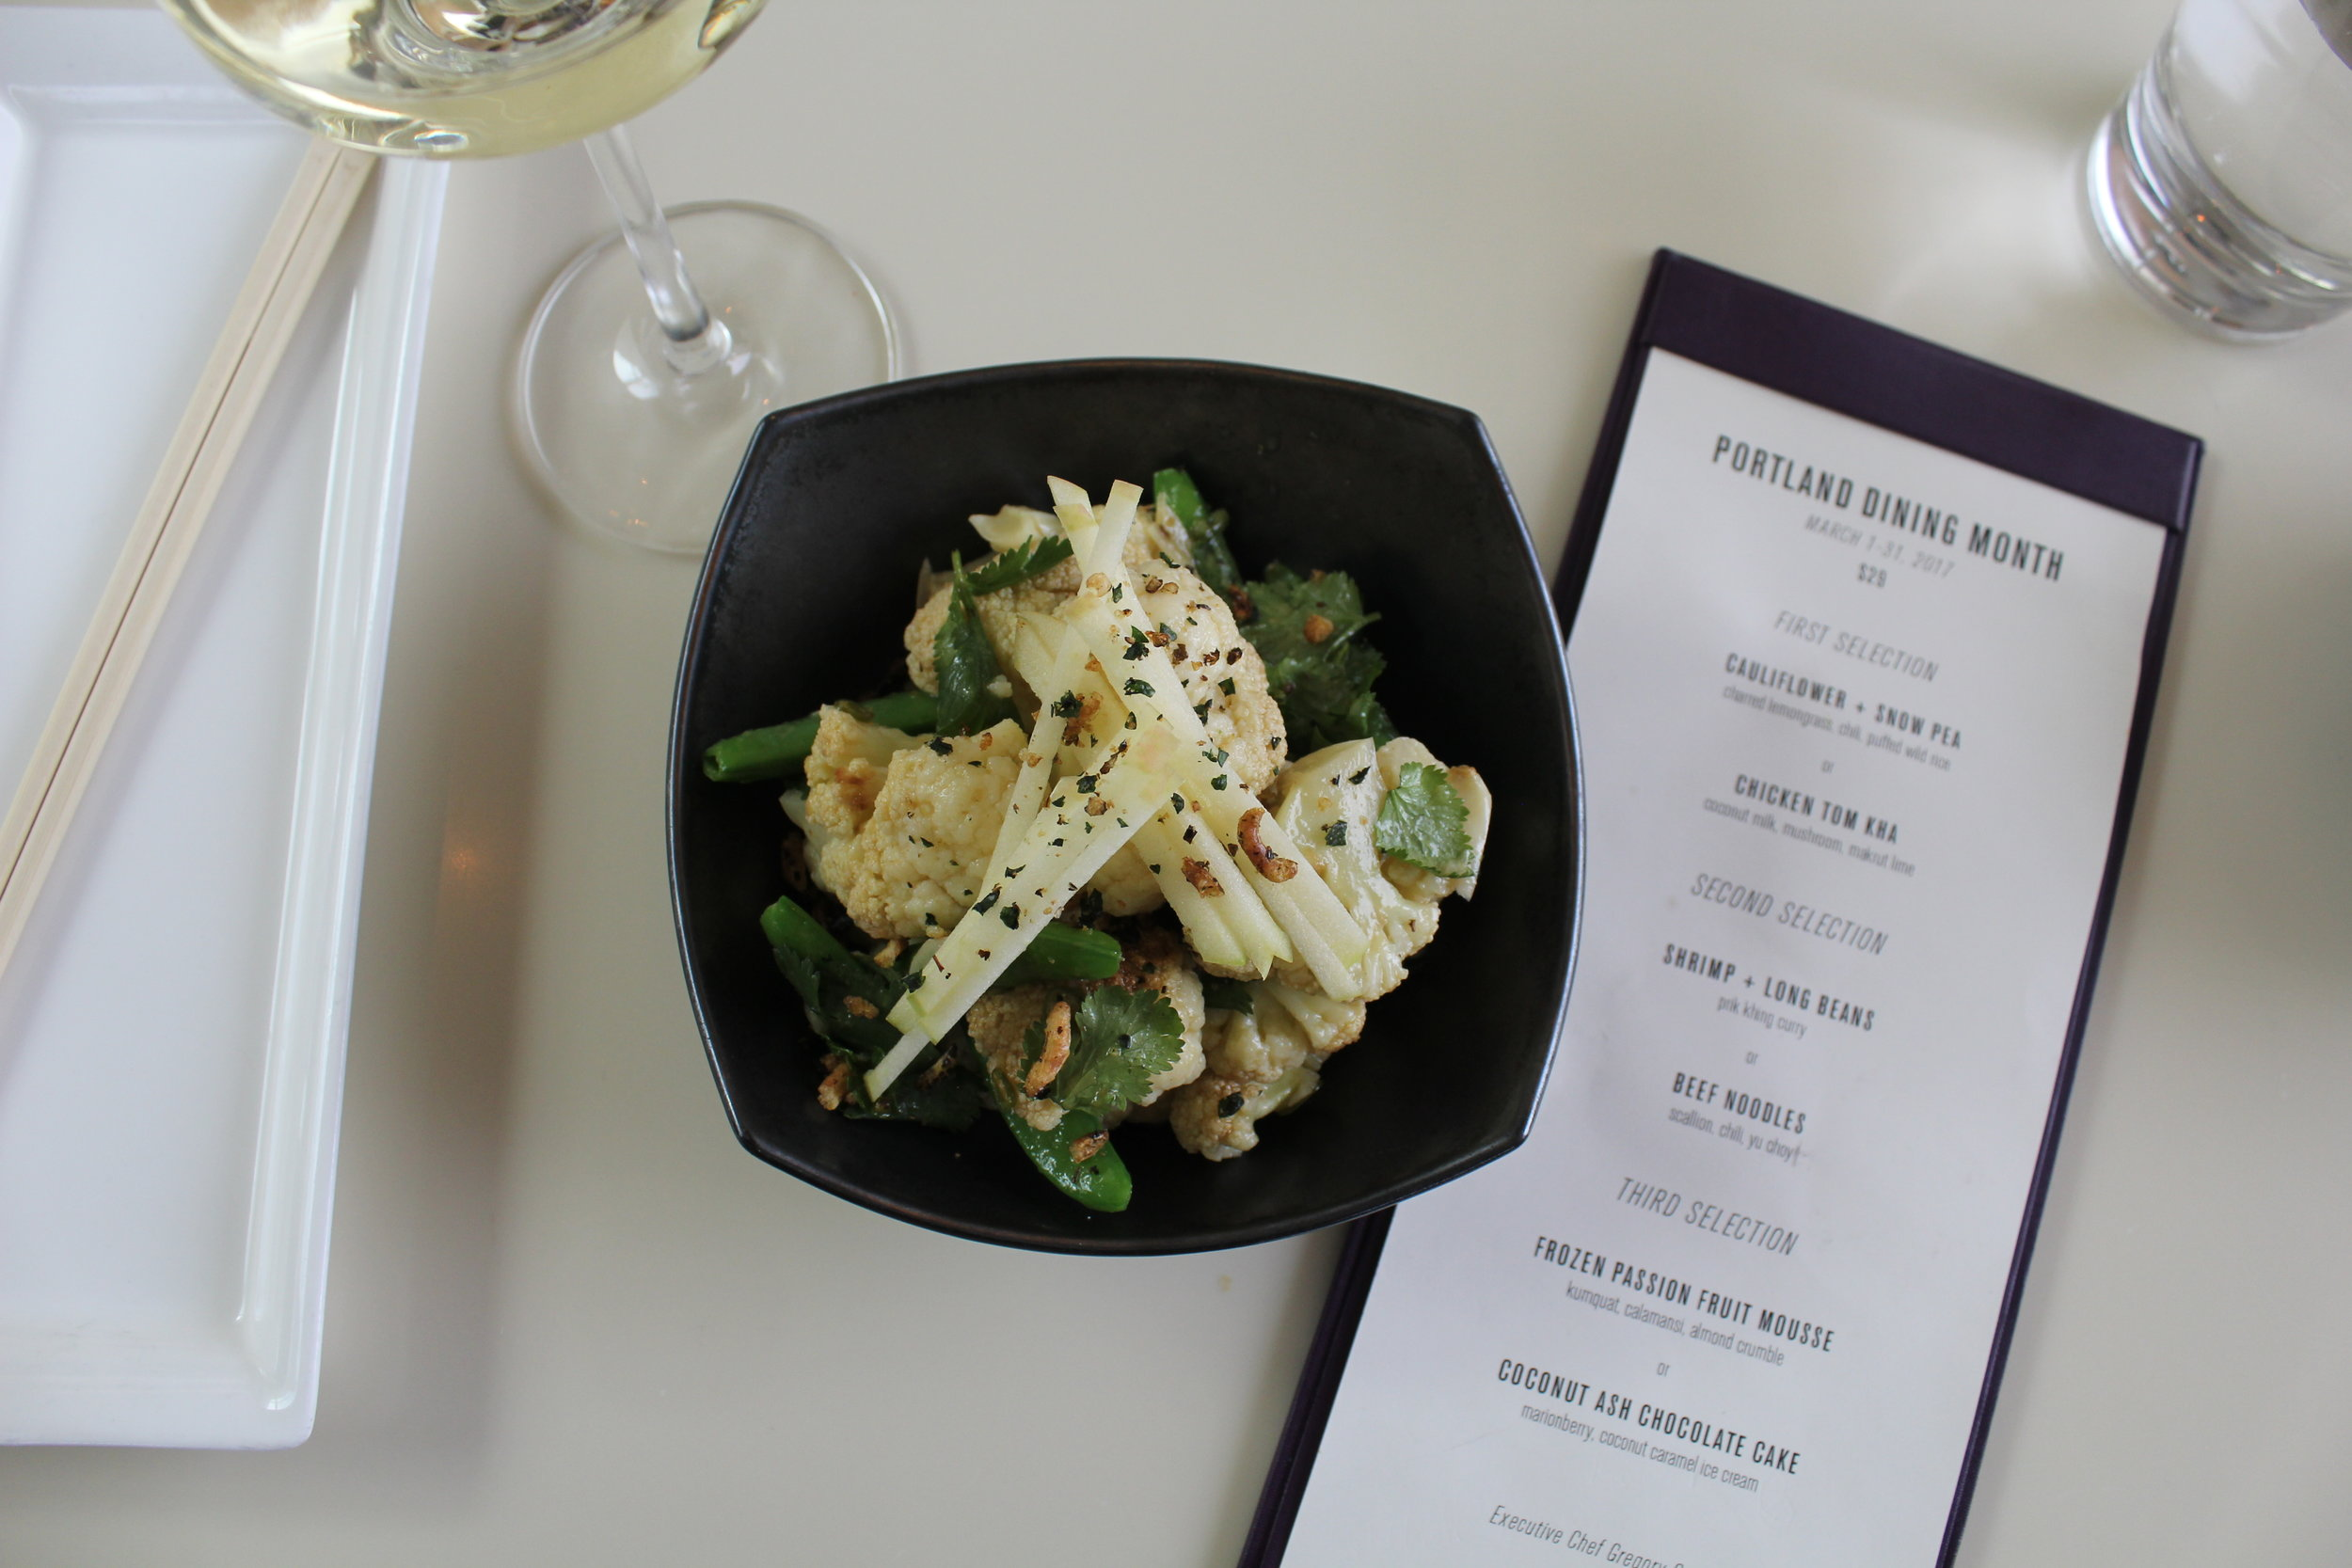 PORTLAND DINING MONTH AT DEPARTURE